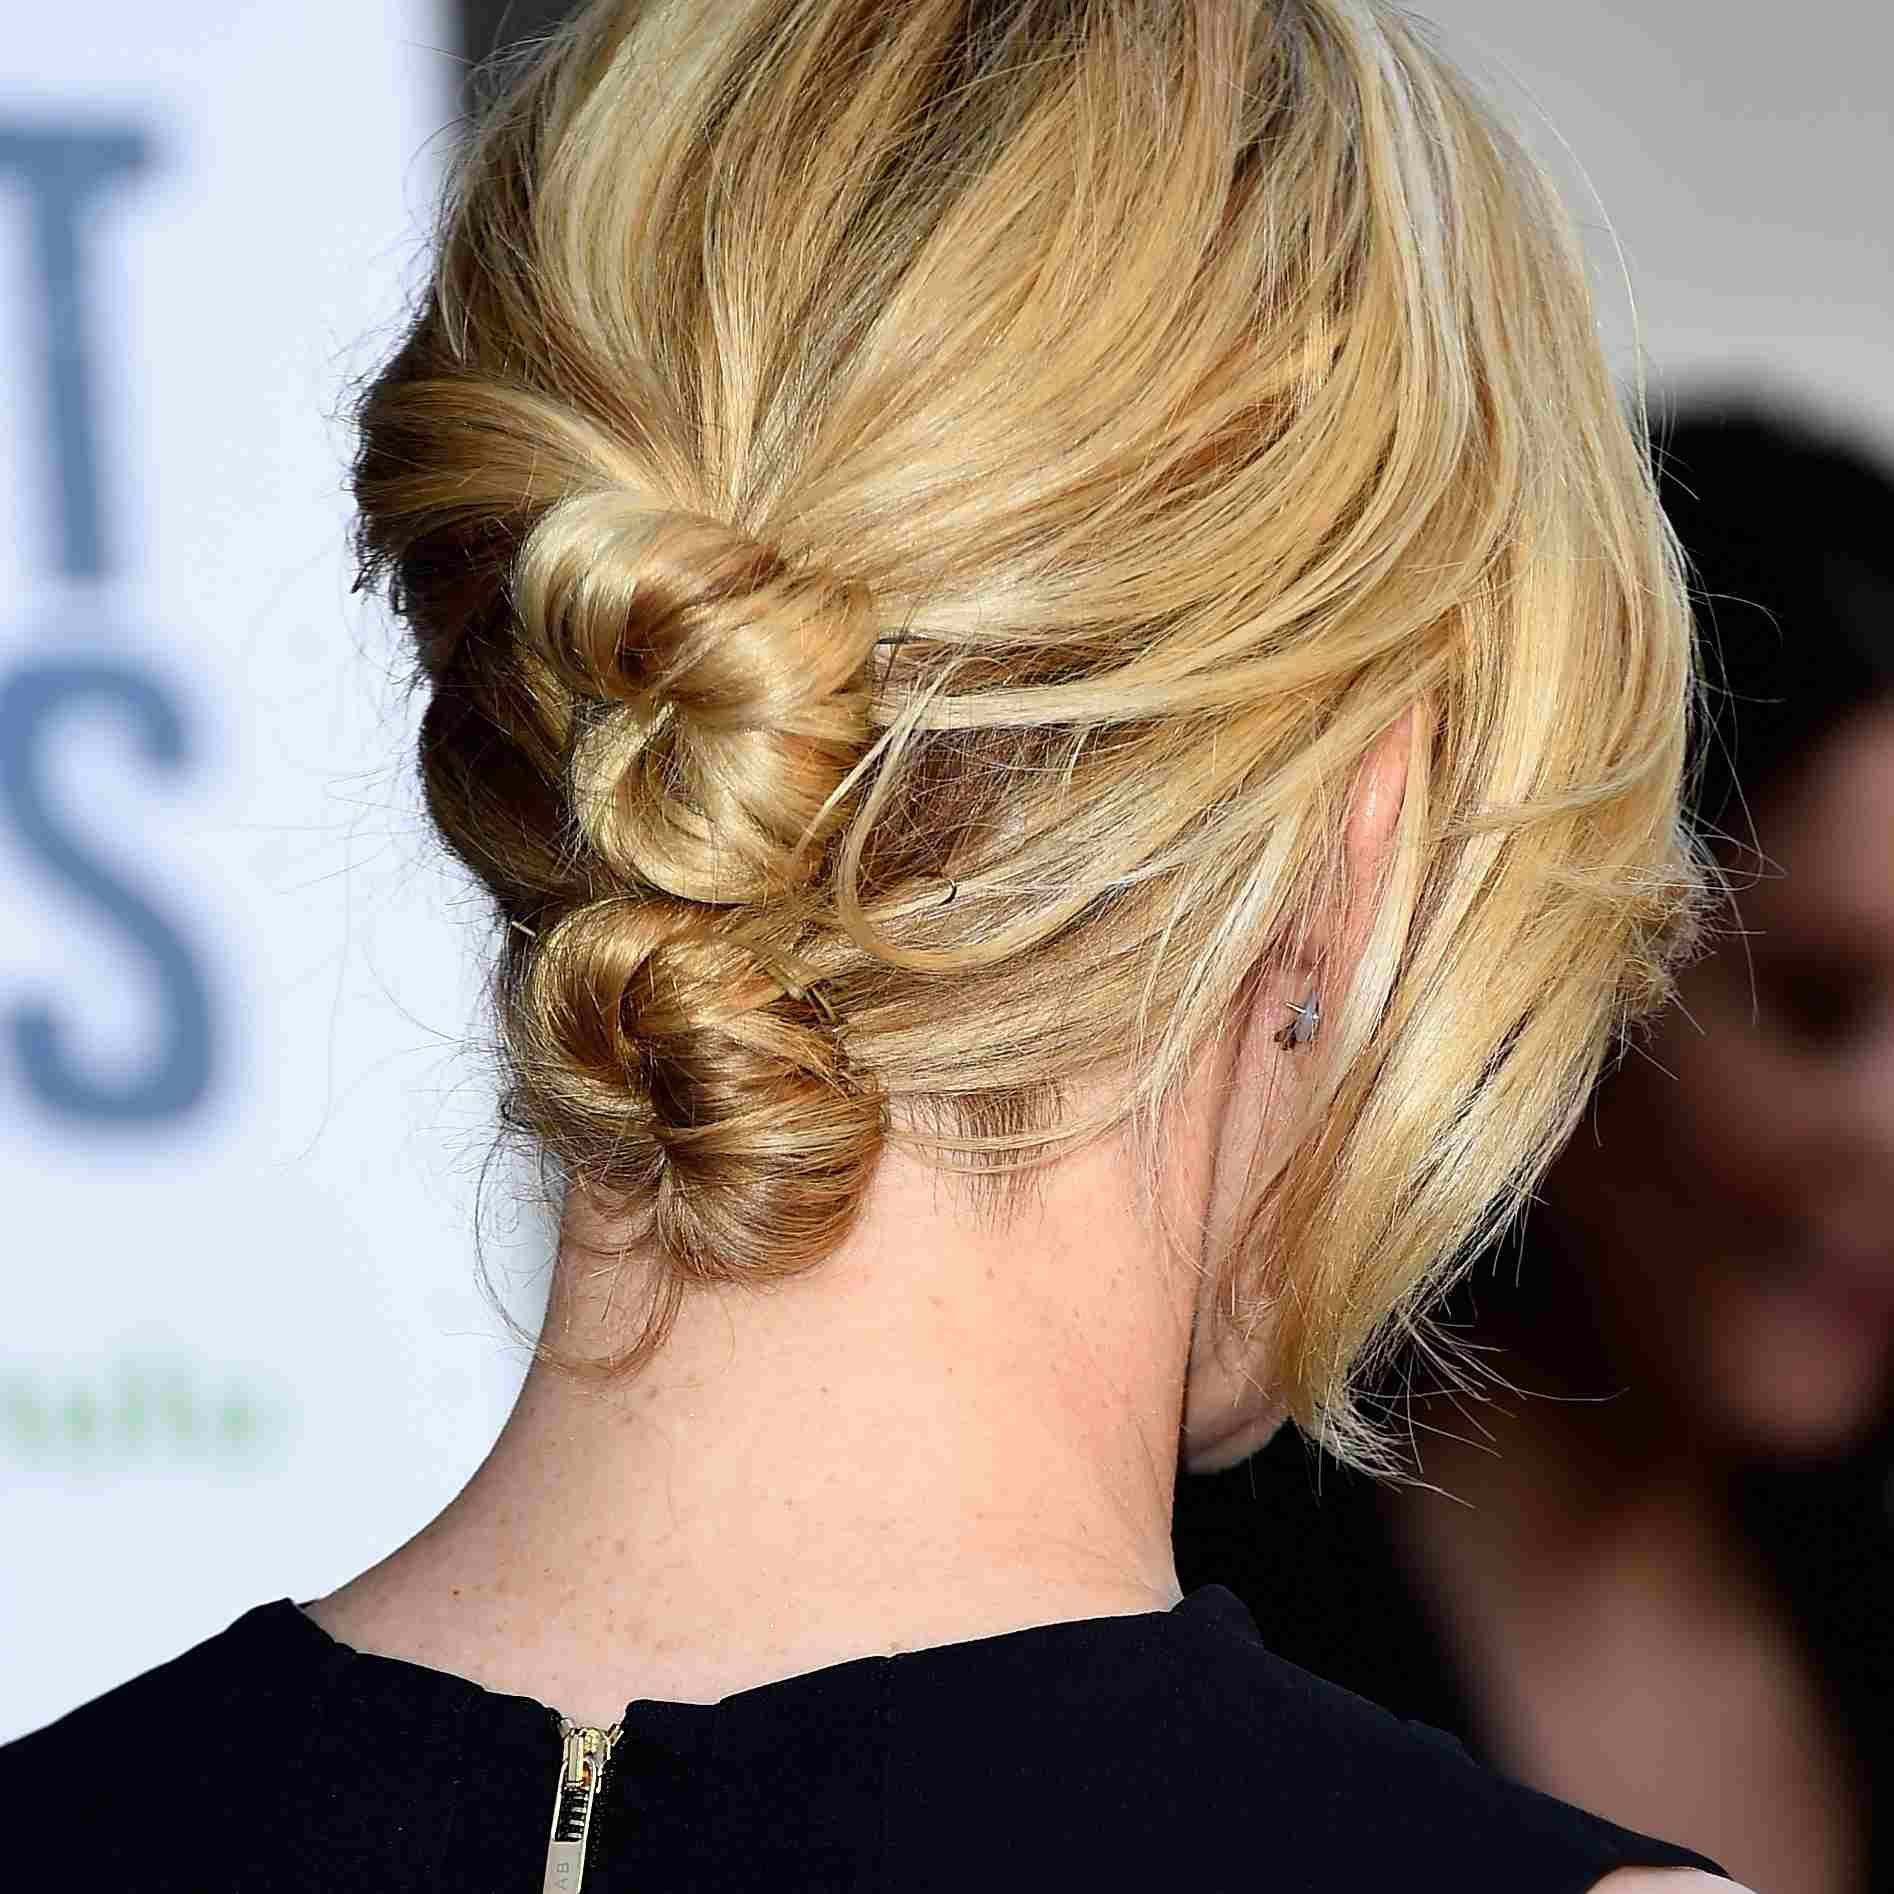 Elizabeth Banks with stacked chignons